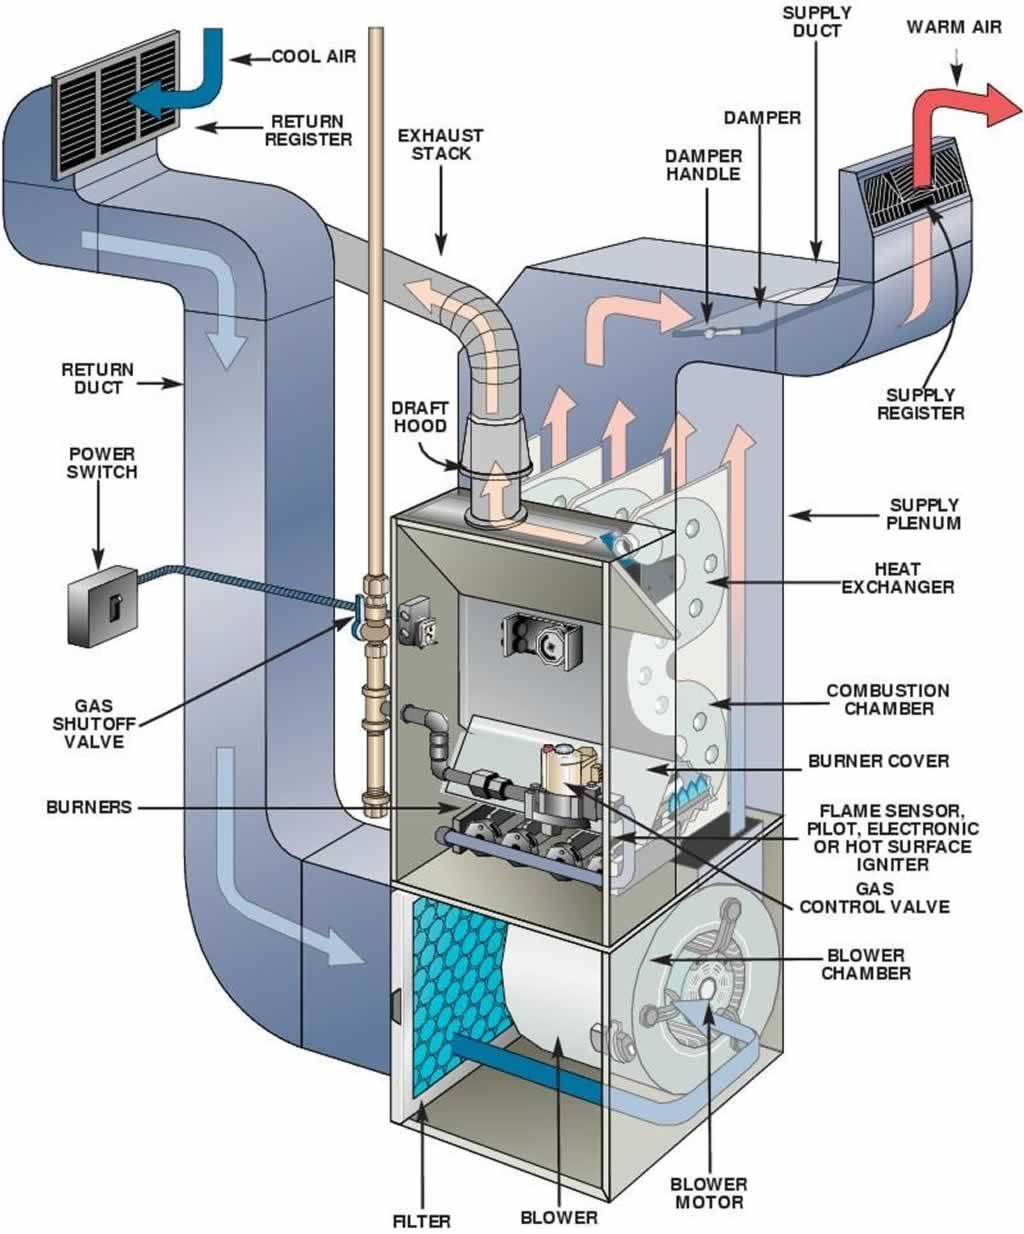 medium resolution of 5 ultimate facts you need to know about furnaces furnace diagram